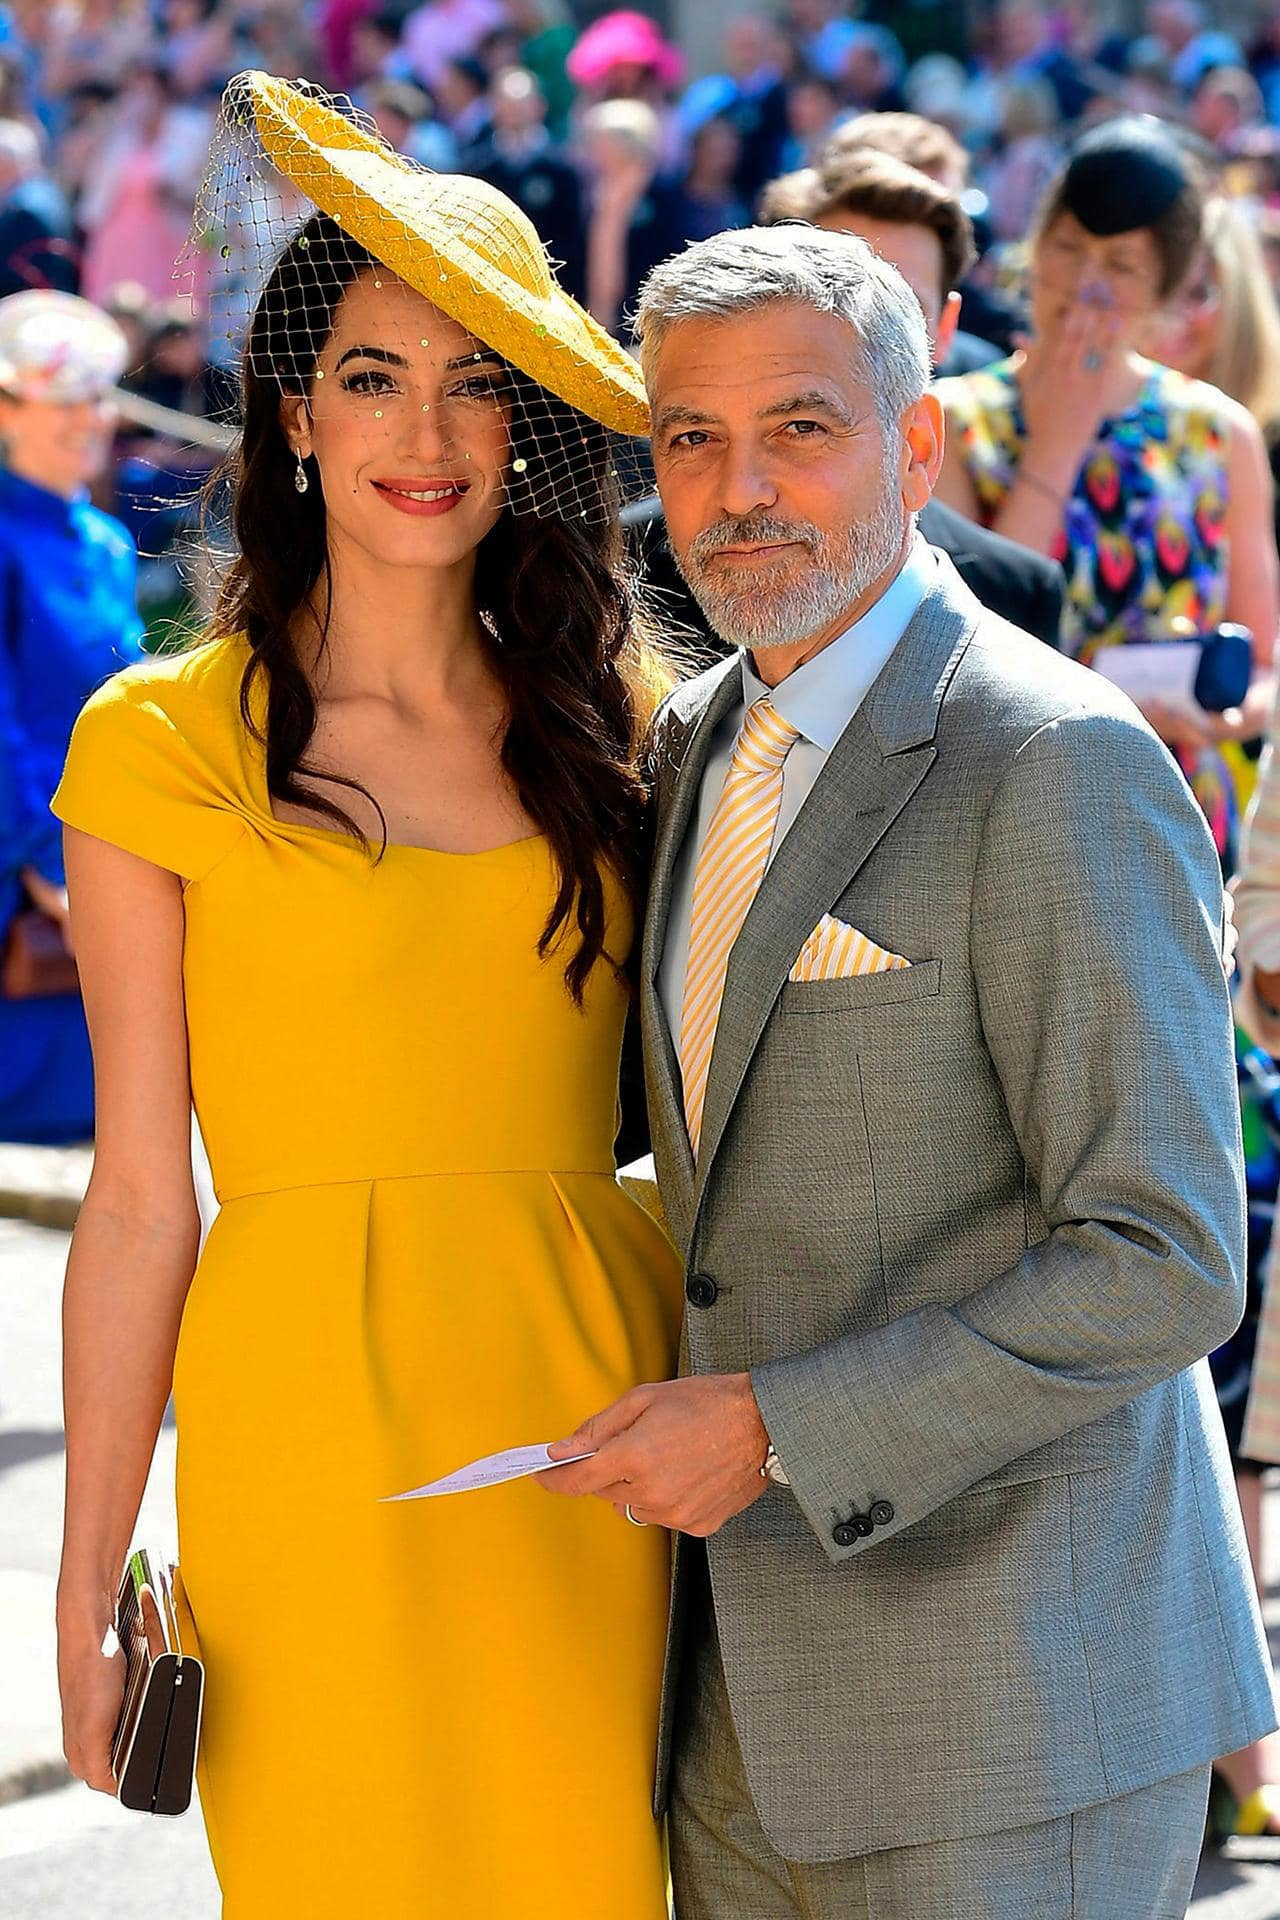 ridley-london-blog-image-maxi-dresses-amal-clooney-yellow